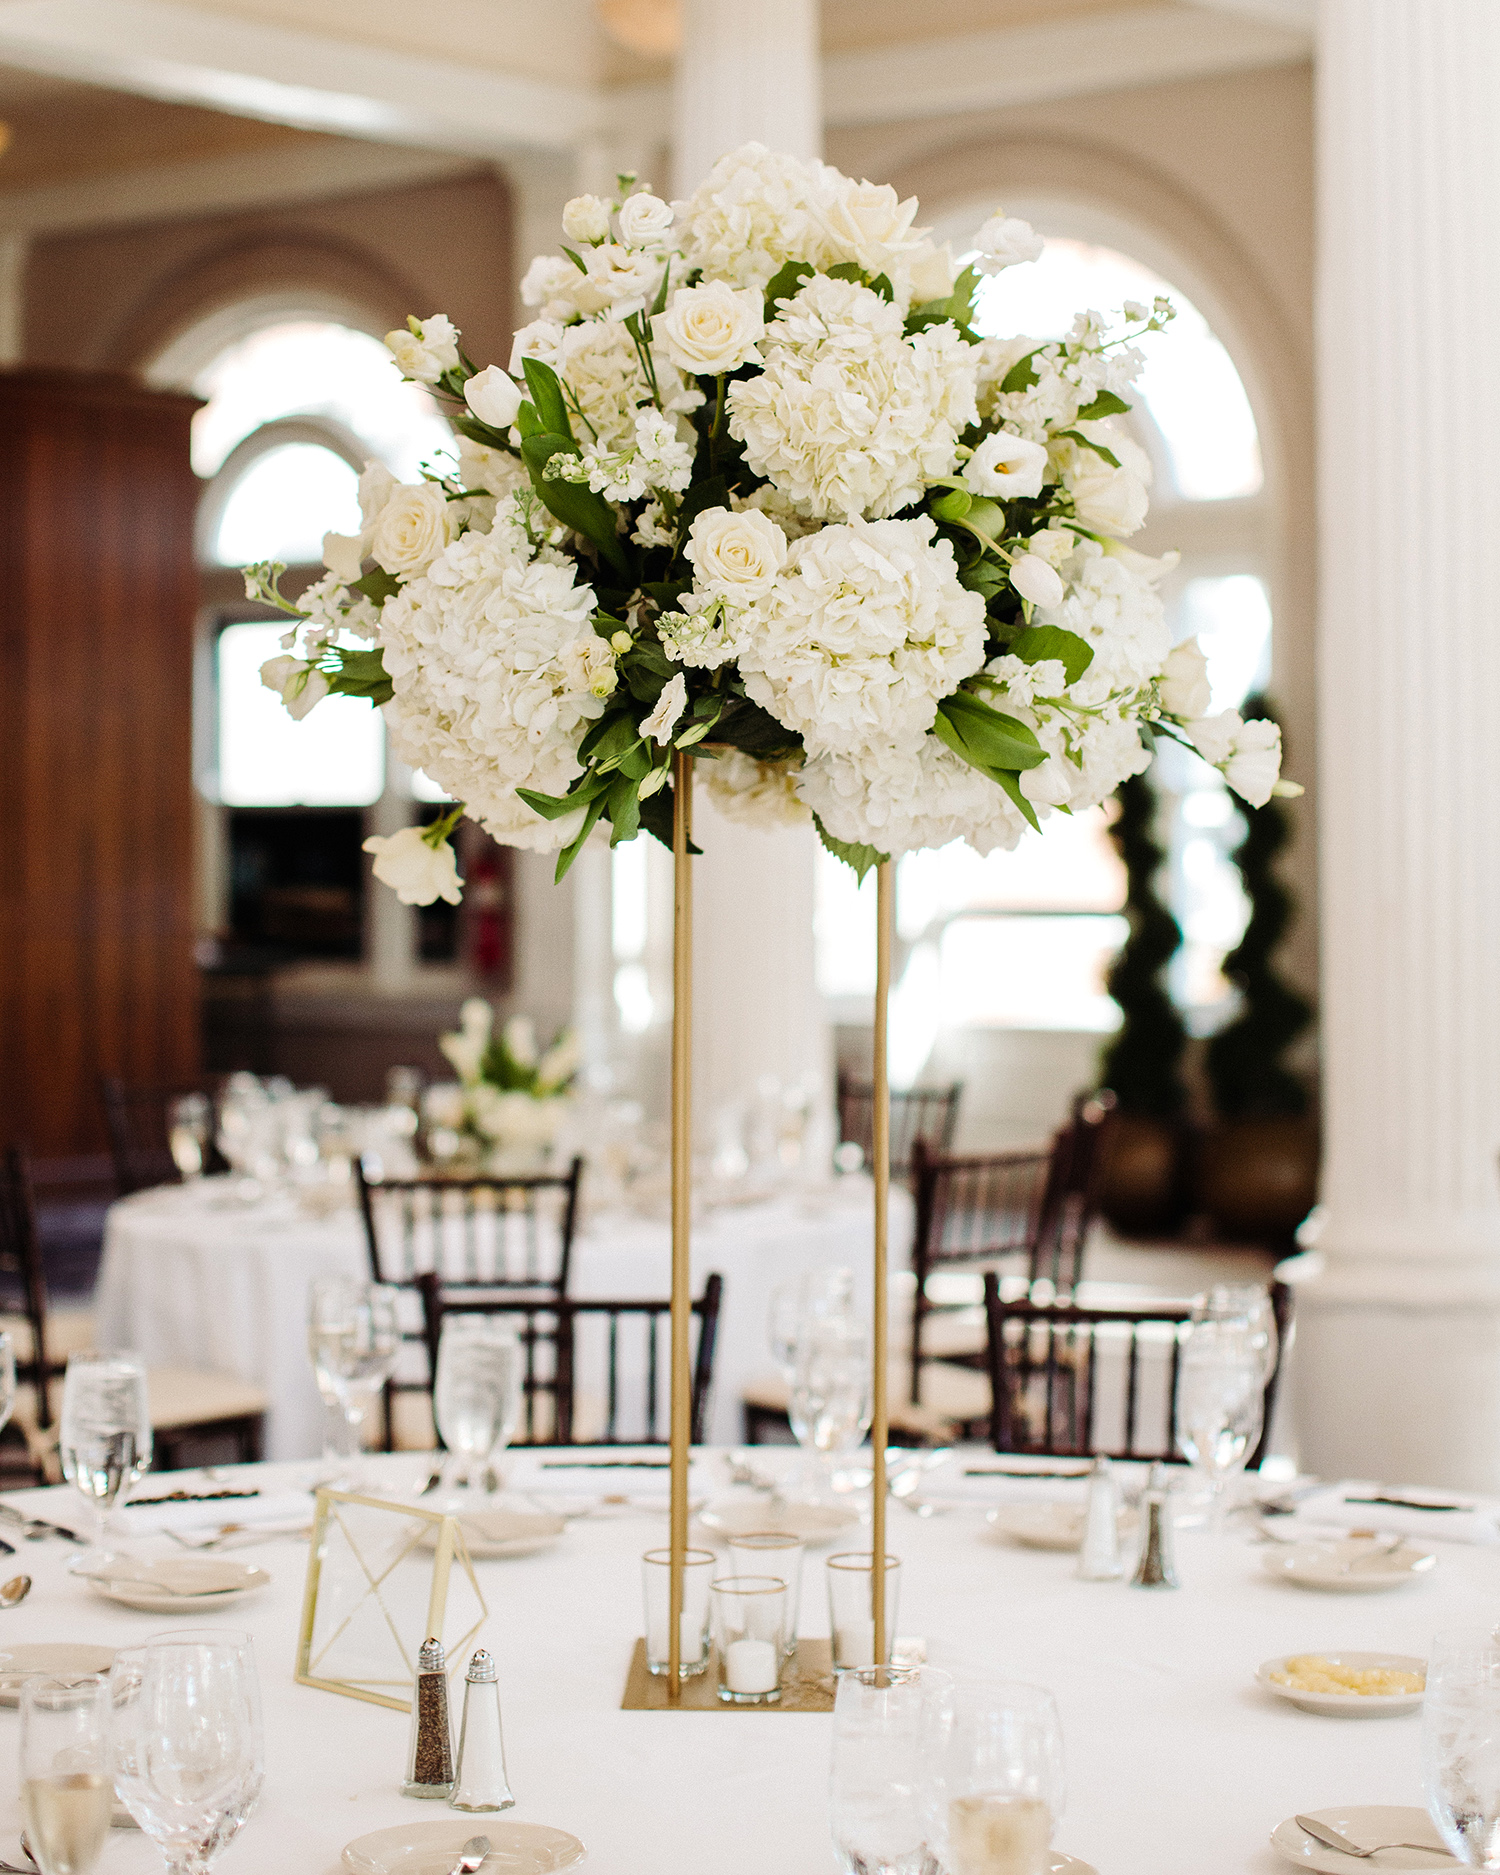 bryanna nick wedding tall floral reception table centerpieces